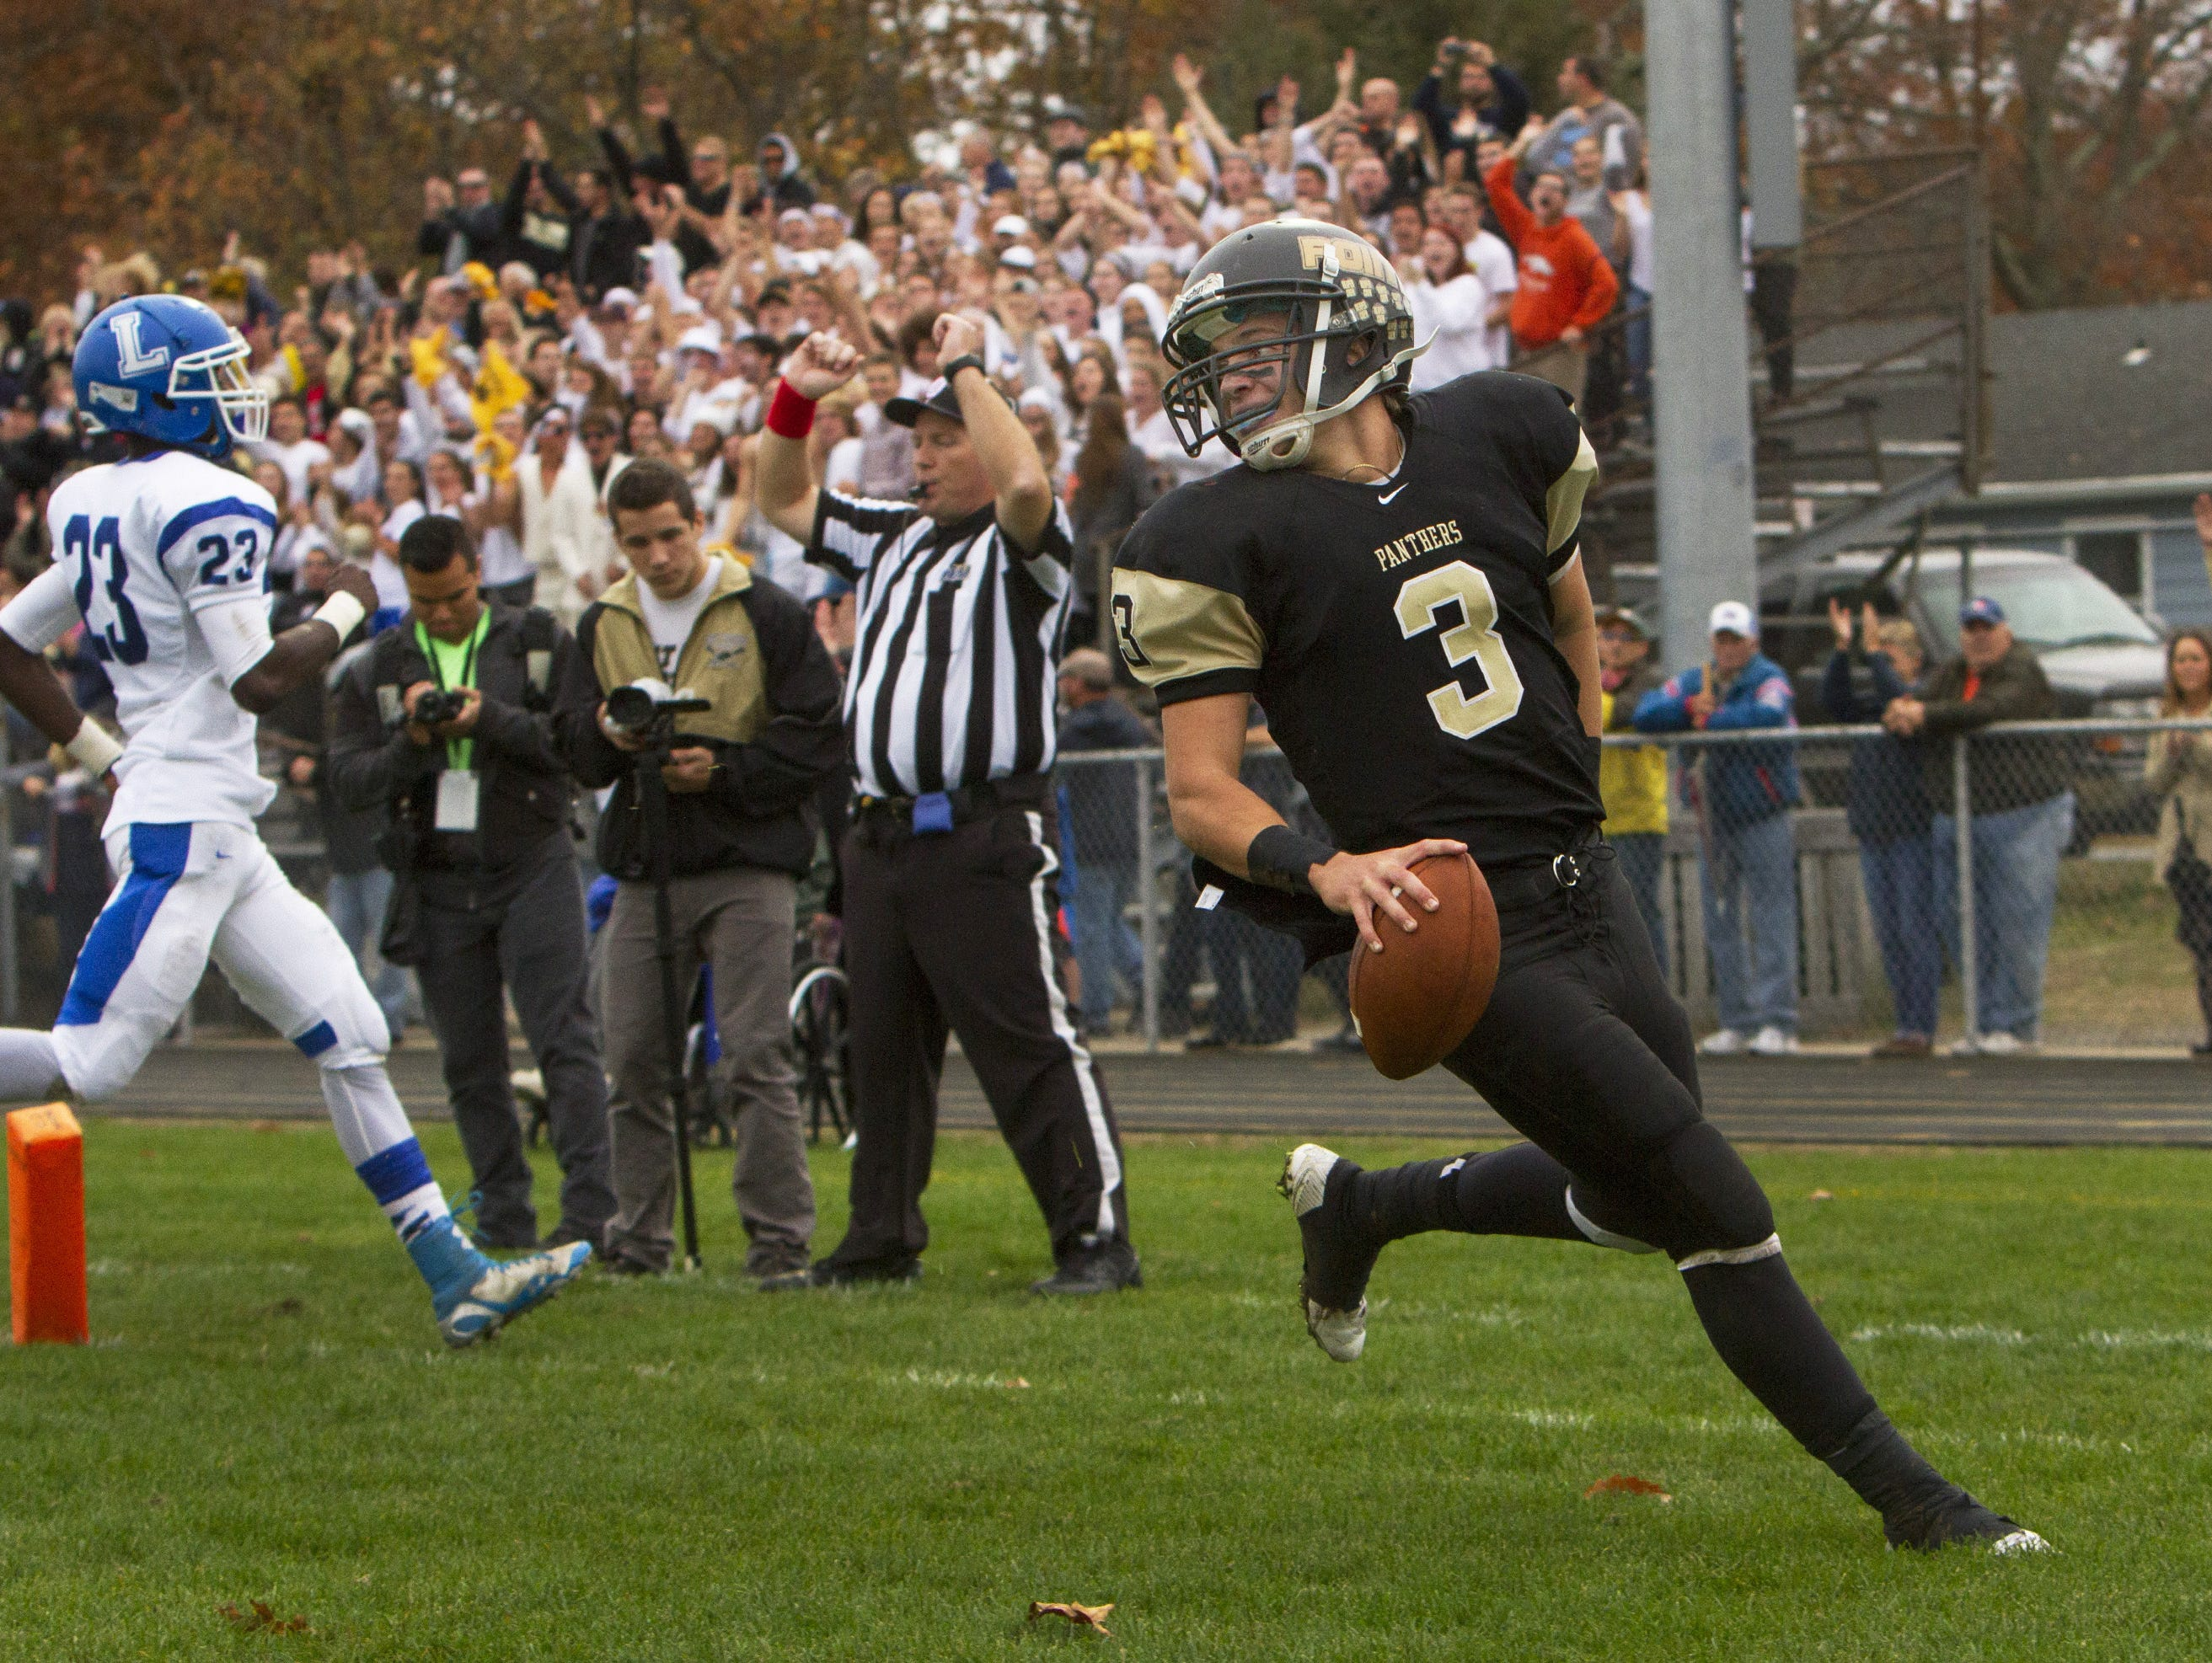 Point Boro quarterback Noah Husak, shown scoring a TD last week against Lakewood, will try and lead the Panthers to their second win of the season over Raritan Friday night.